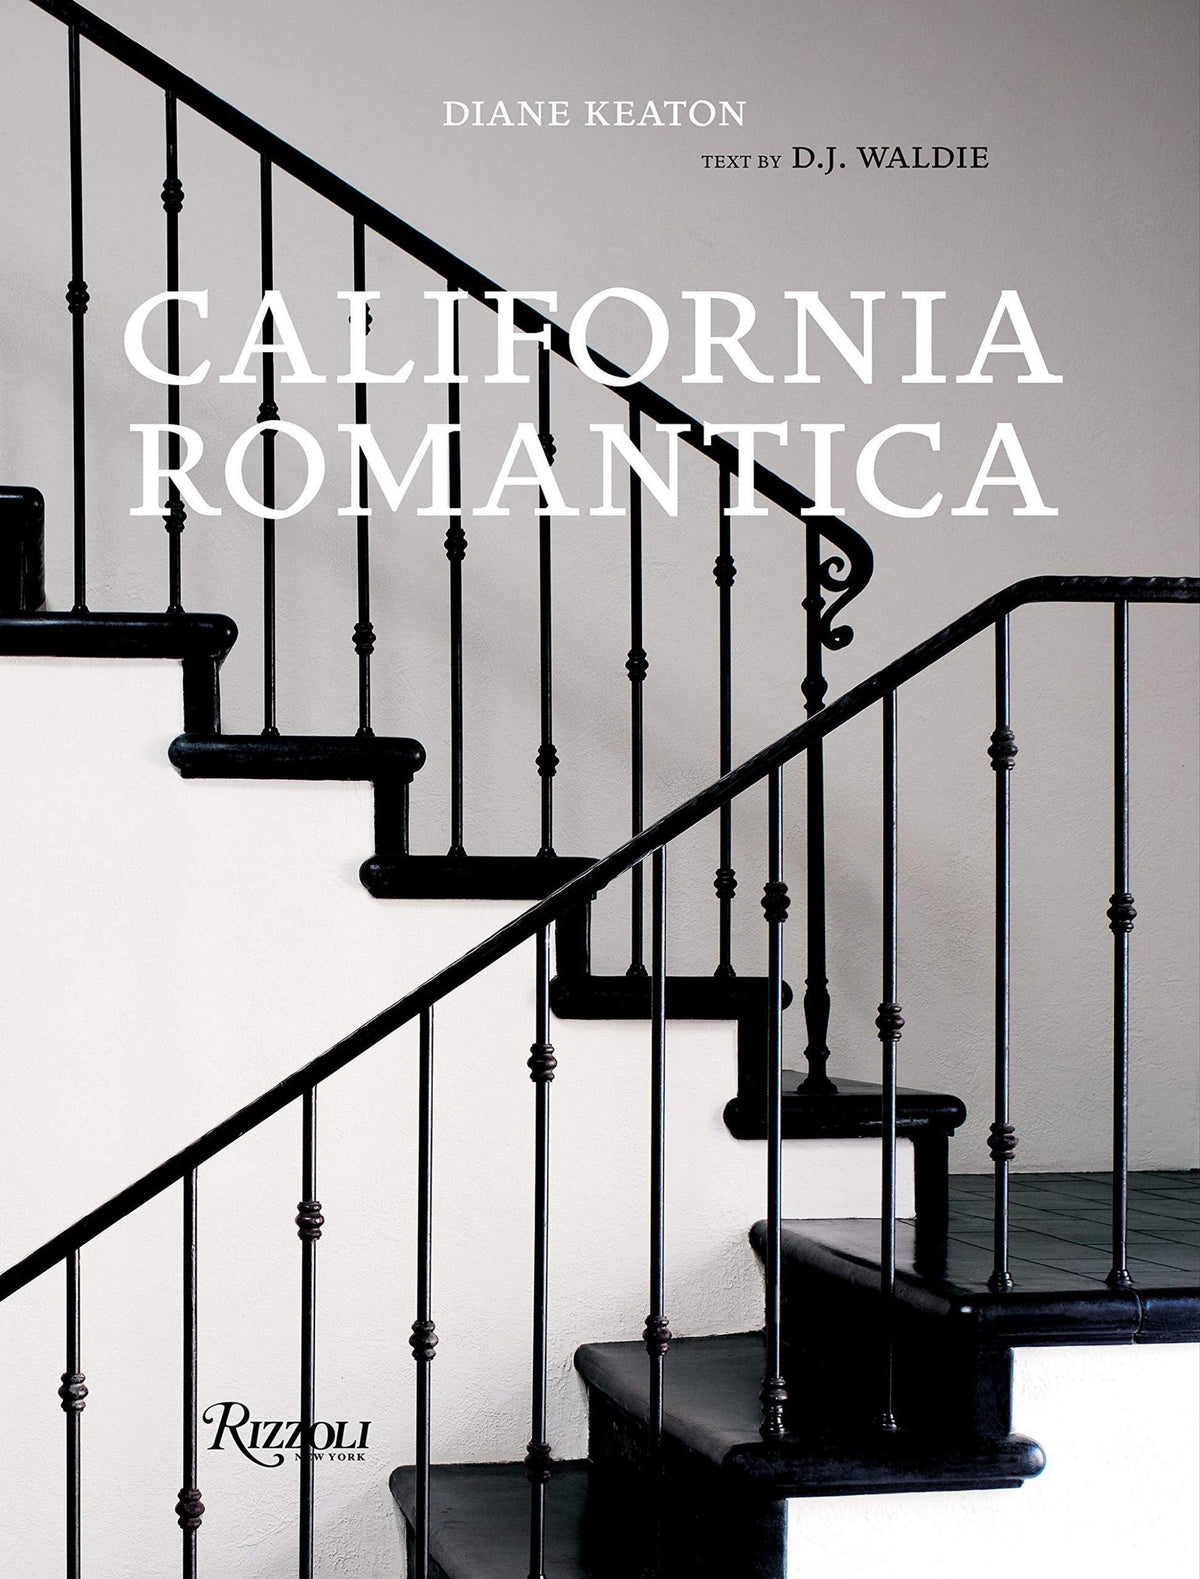 California Romantica - Wheat Boutique